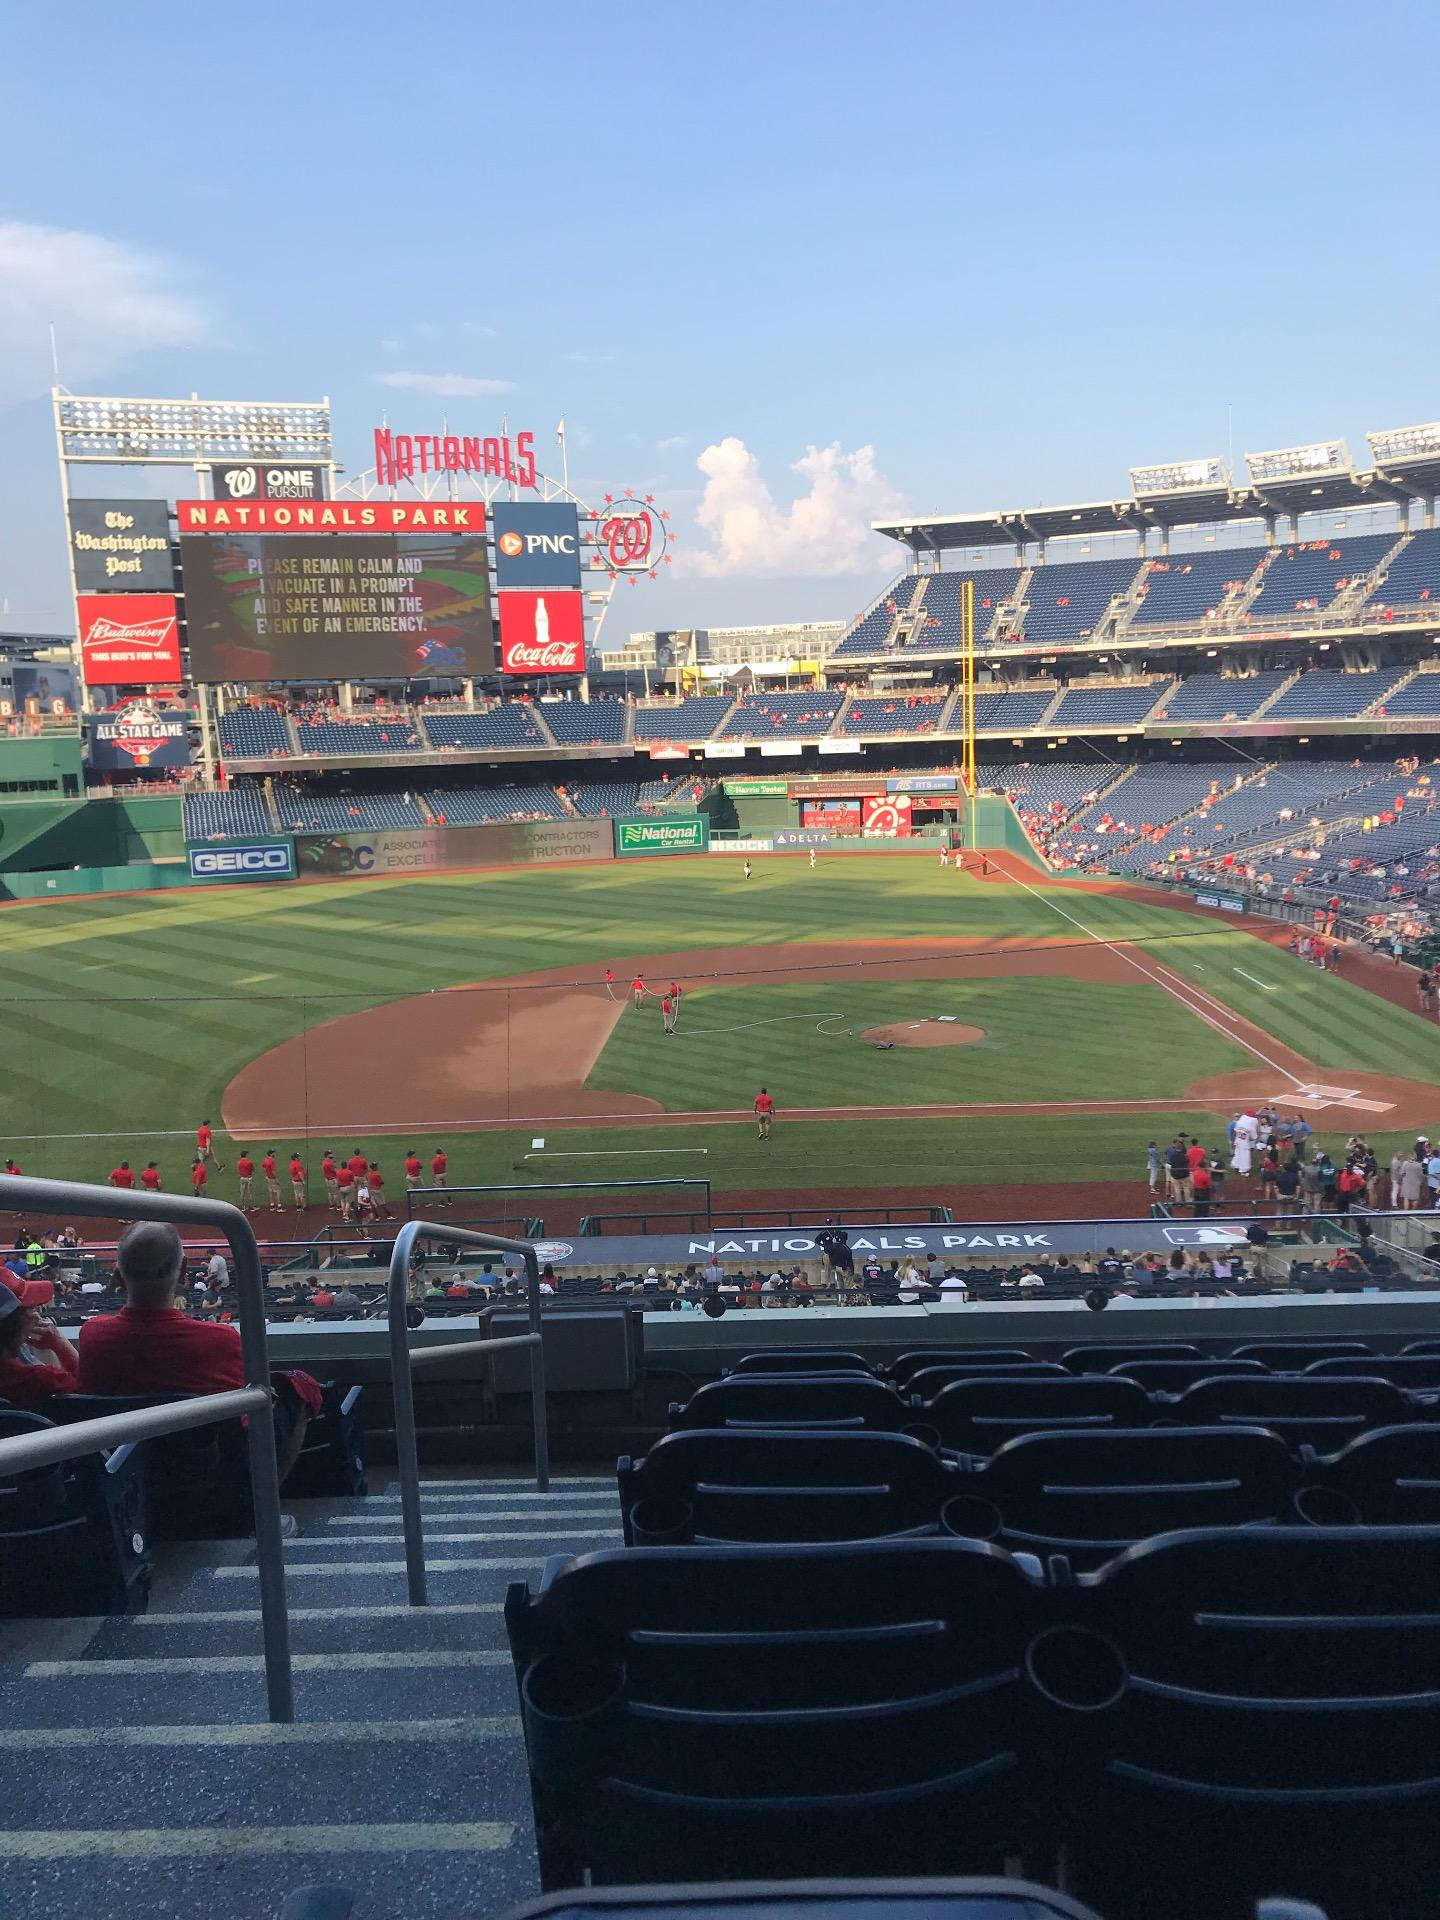 Nationals Park Section 209 Row G Seat 23